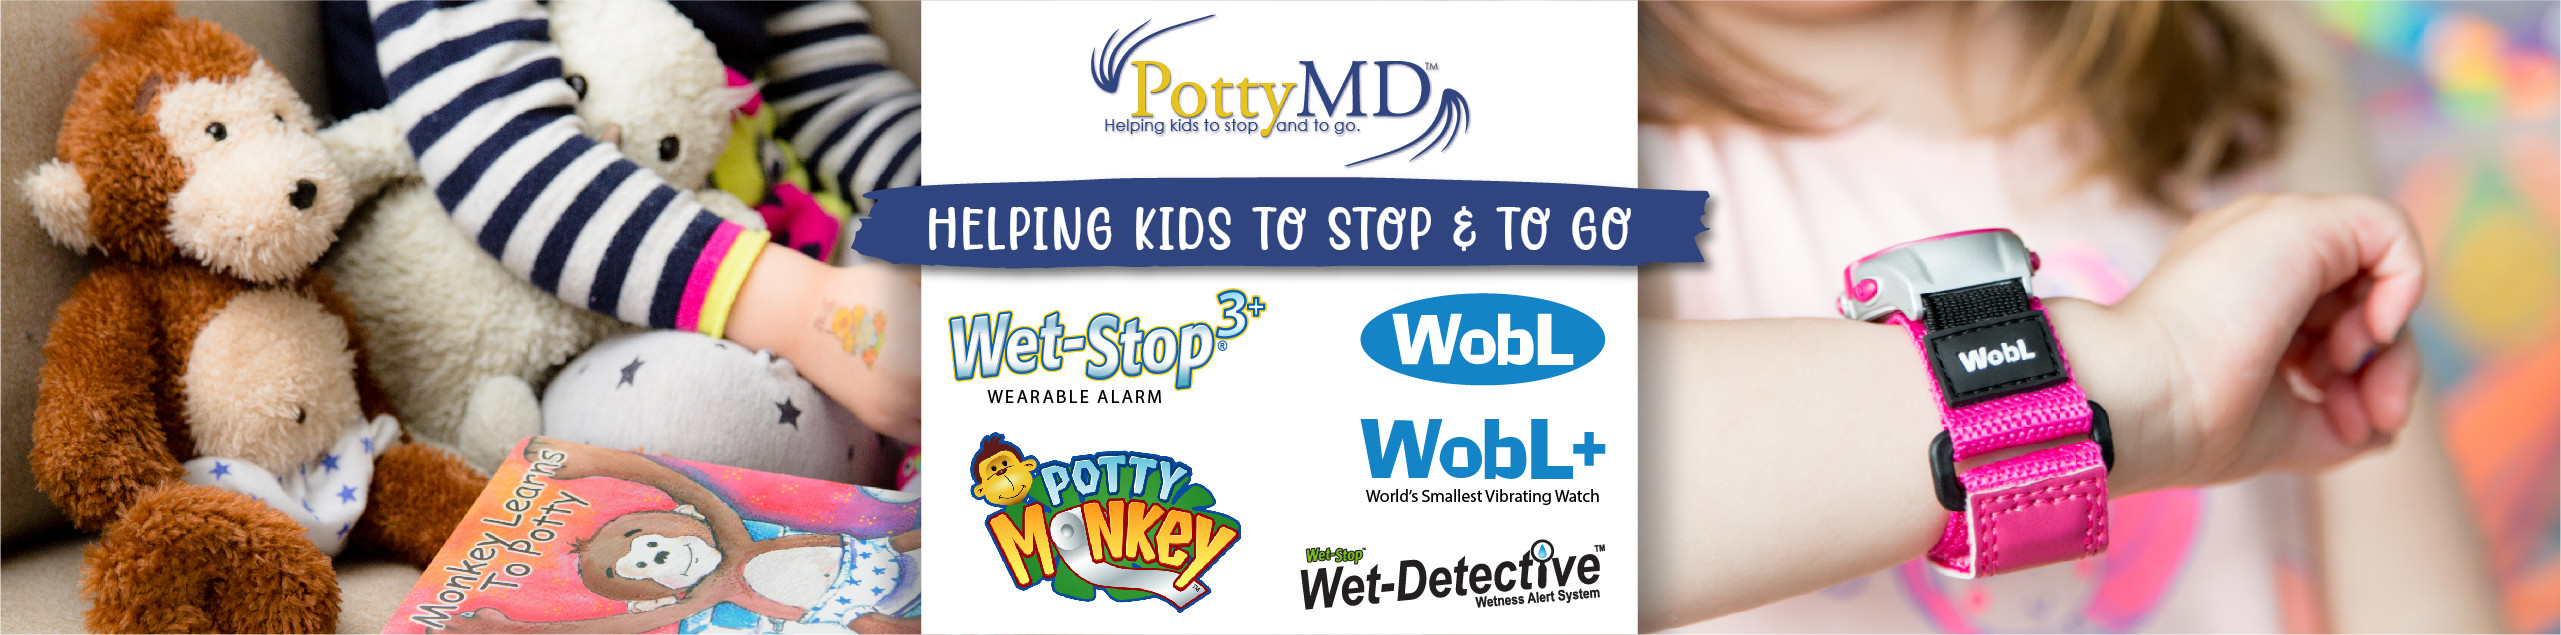 PottyMD company brings you Wet-Stop 3+ wearable bedwetting alarm, Potty Monkey for potty training help, WobL and WobL+ vibrating alarm reminder watches, and Wet-Detective bed pad alarm system for incontinence help.